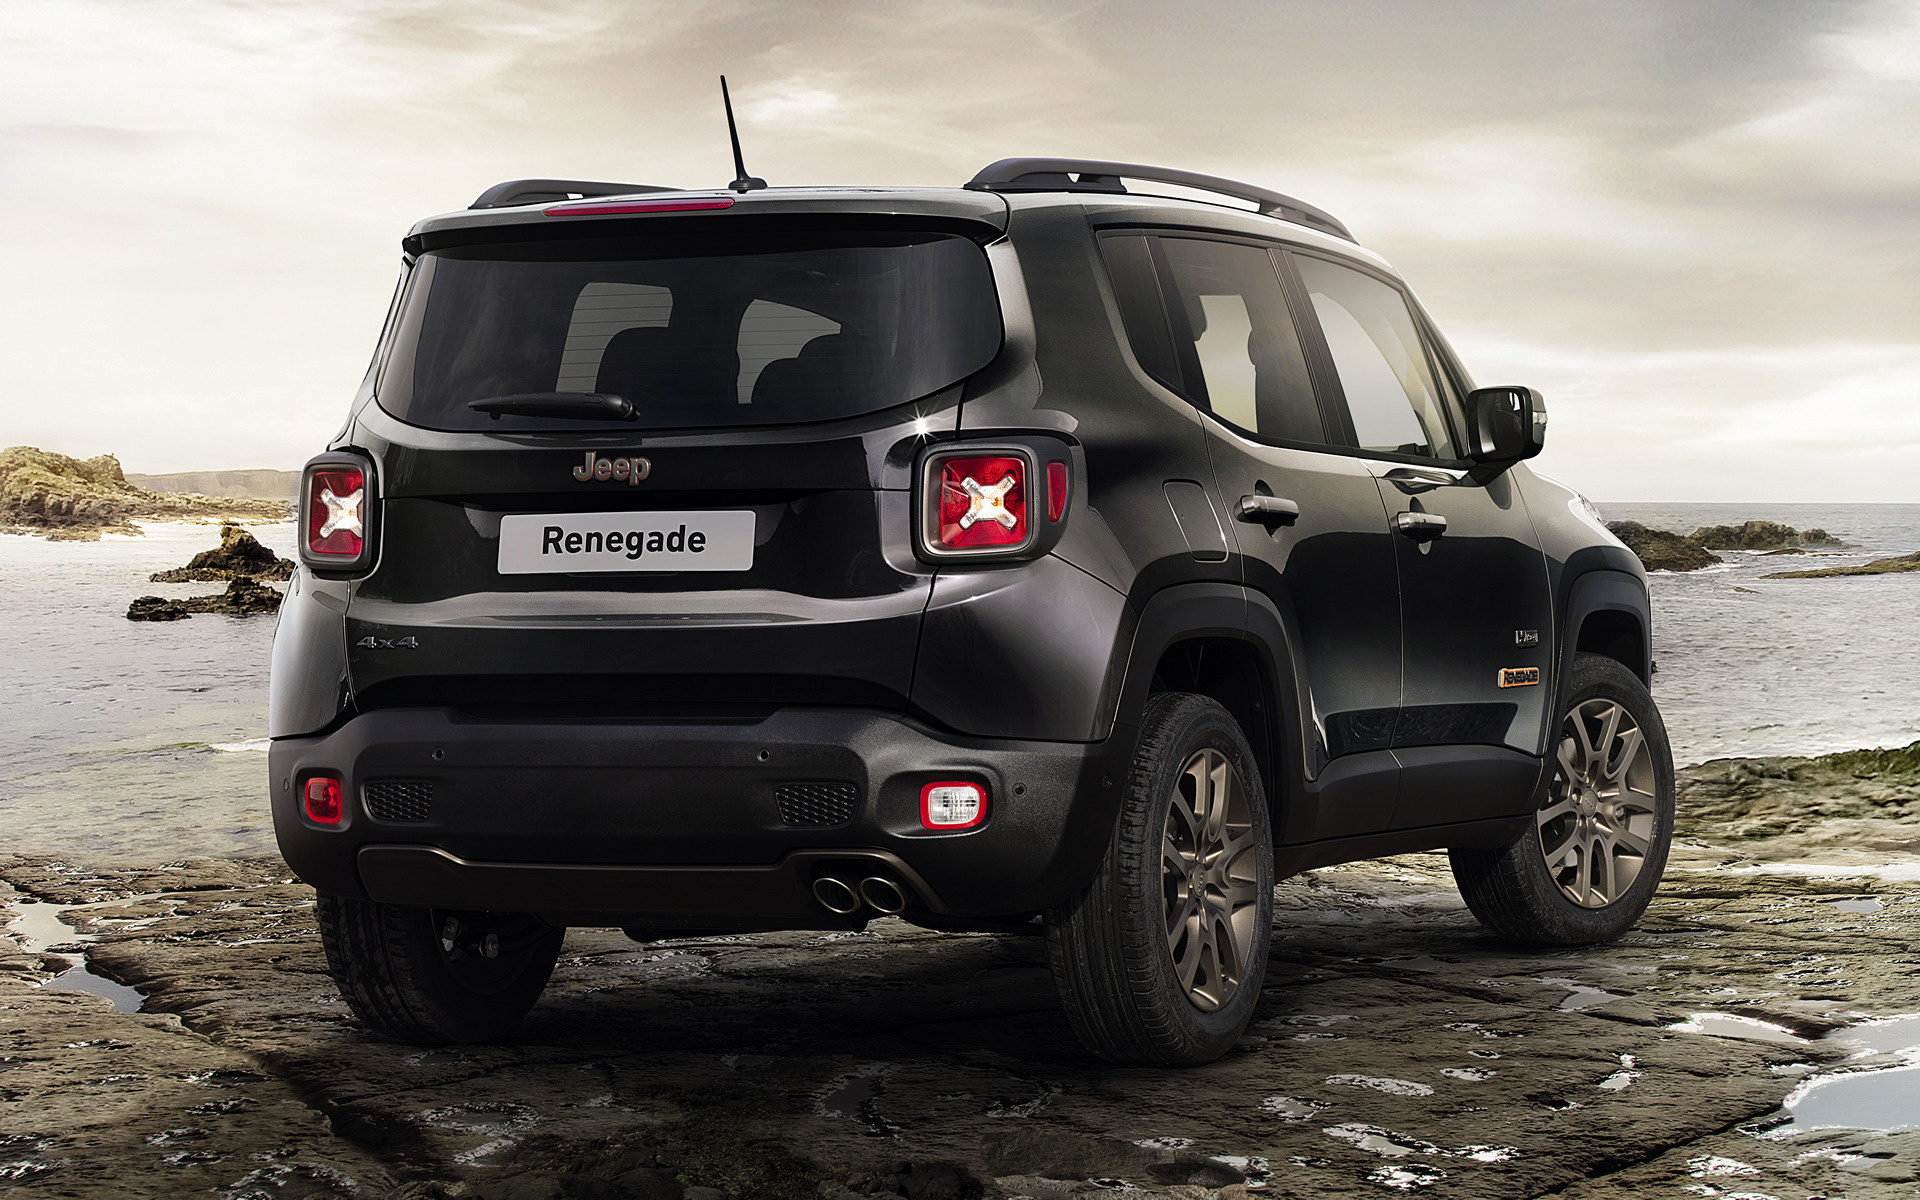 Dodge Ram 2015 >> 2016 Jeep Renegade 75th Anniversary (EU) - Wallpapers and ...